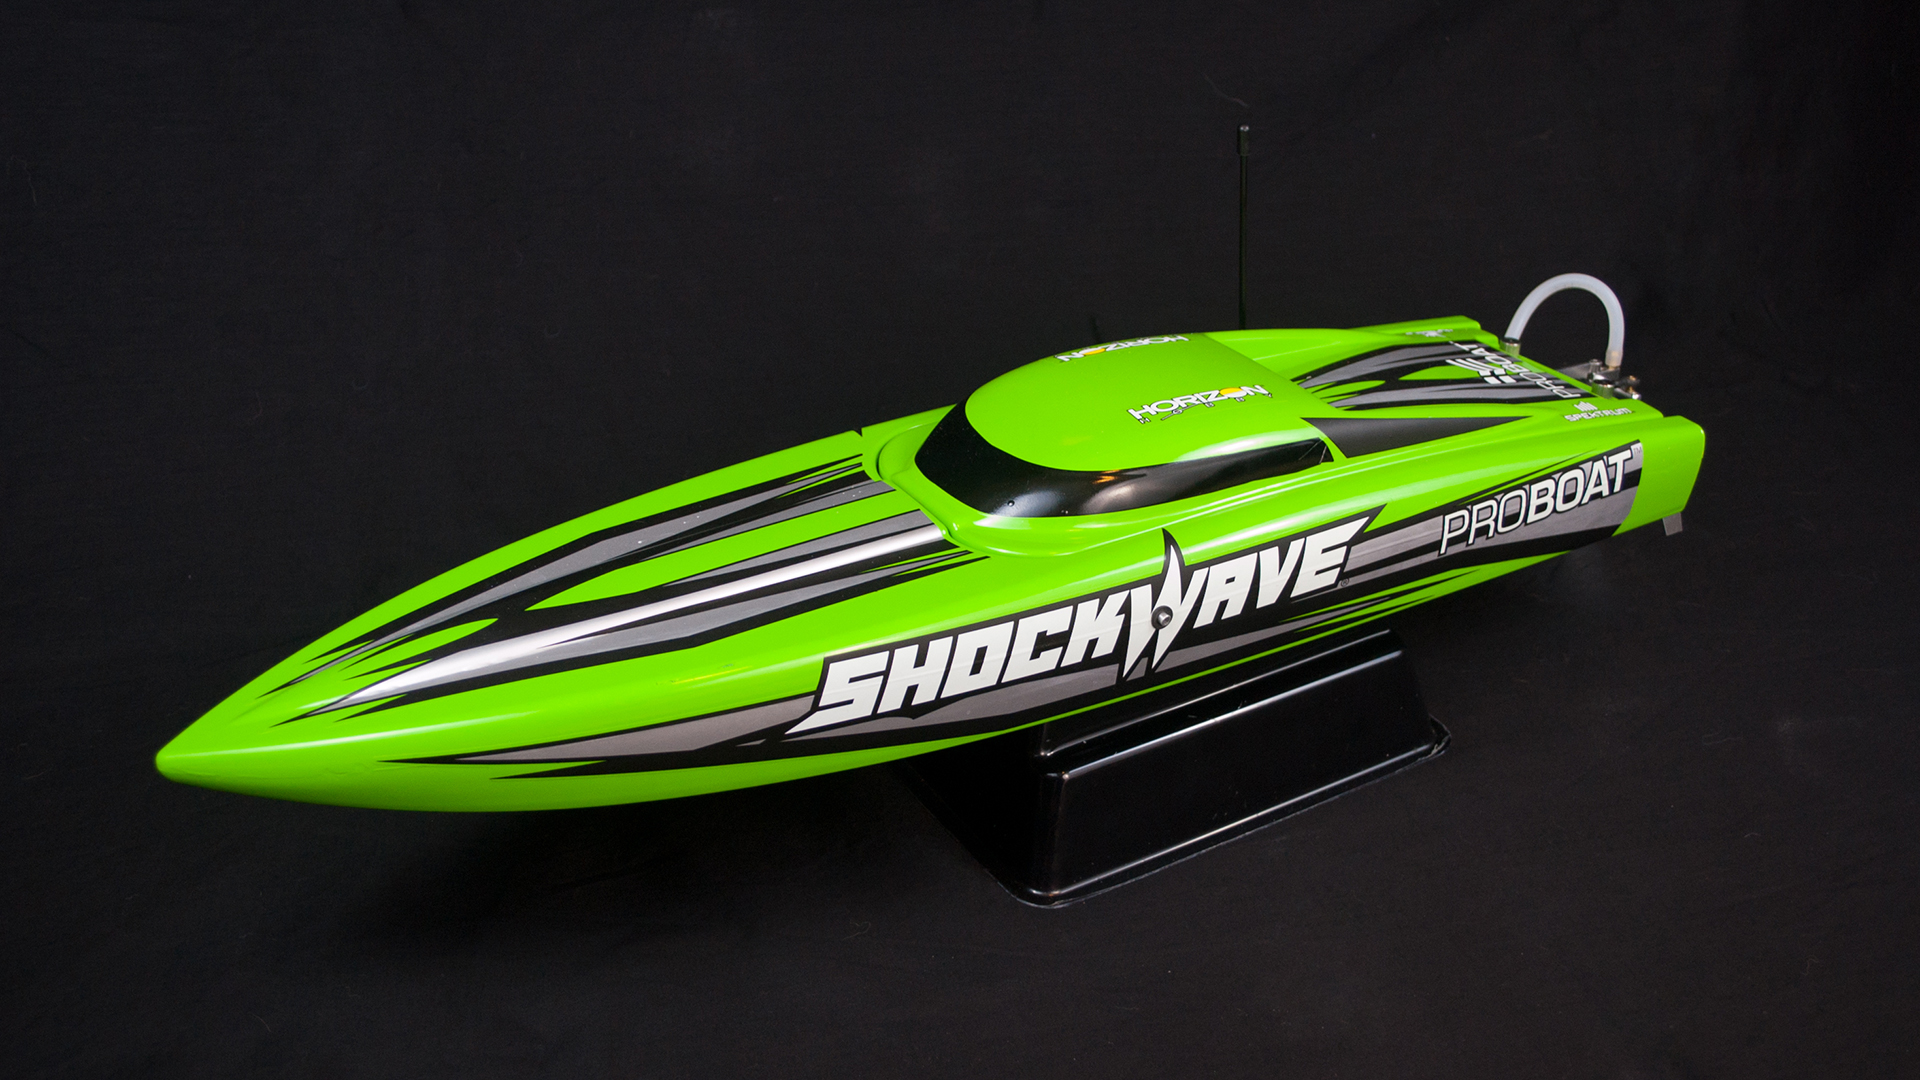 How To Get Into Htesting The Pro Boat Shockwave 26 Tested